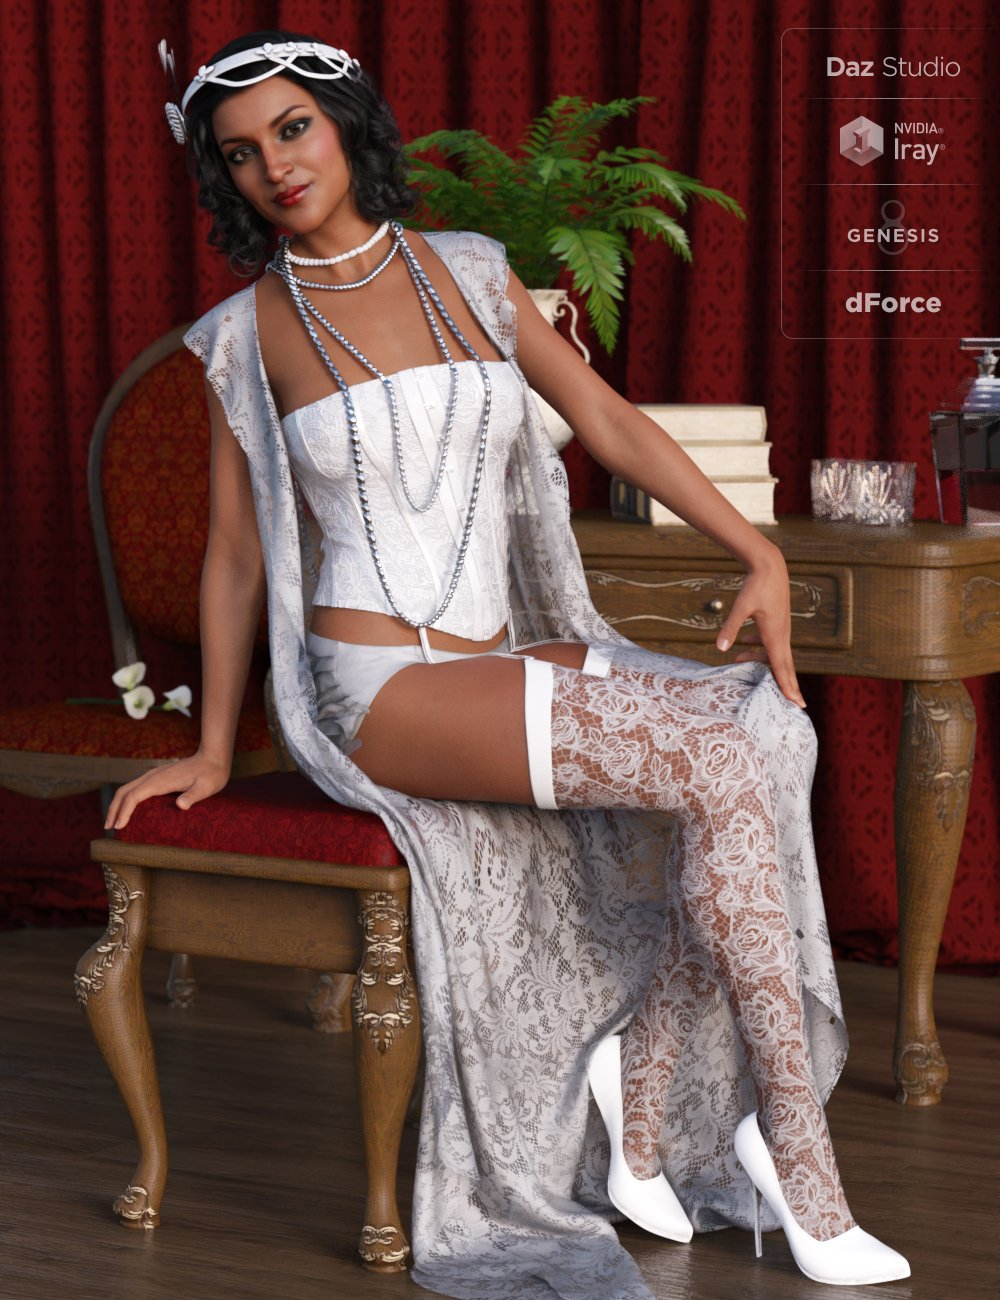 dForce 1920s Boudoir Outfit for Genesis 8 Female(s) by: Barbara BrundonMoonscape GraphicsSade, 3D Models by Daz 3D